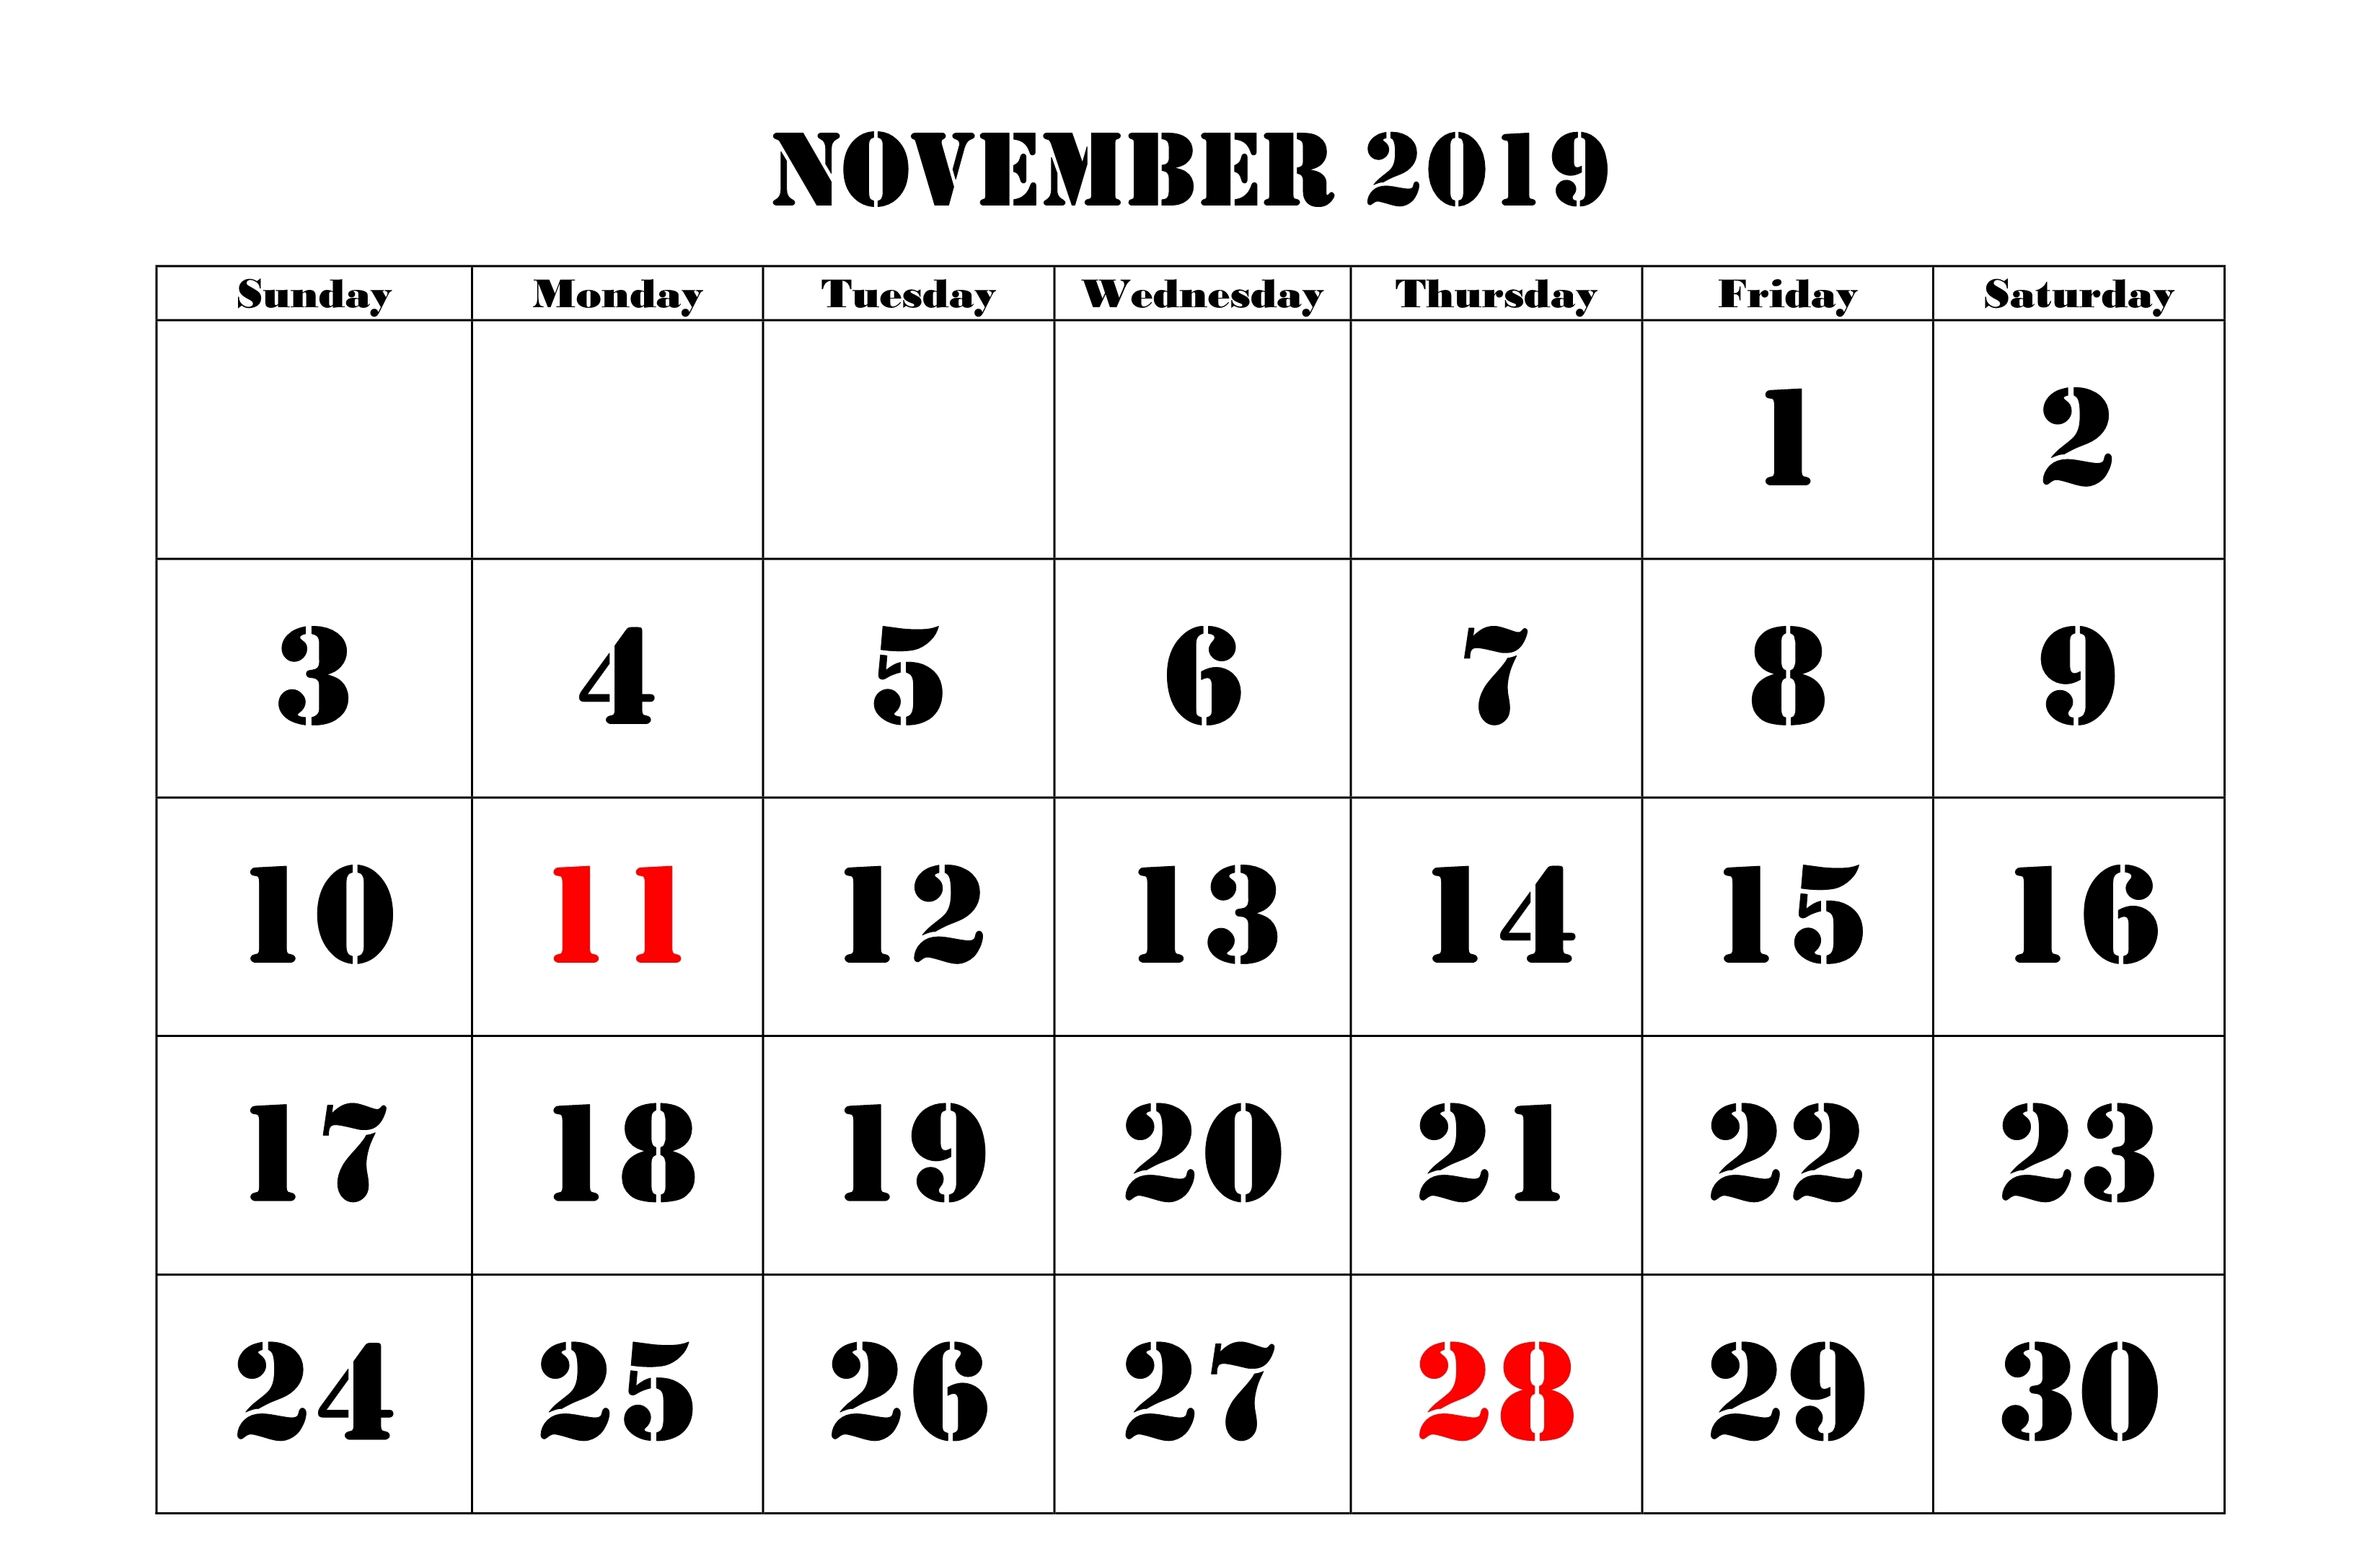 November 2019 Calendar With Holidays UK